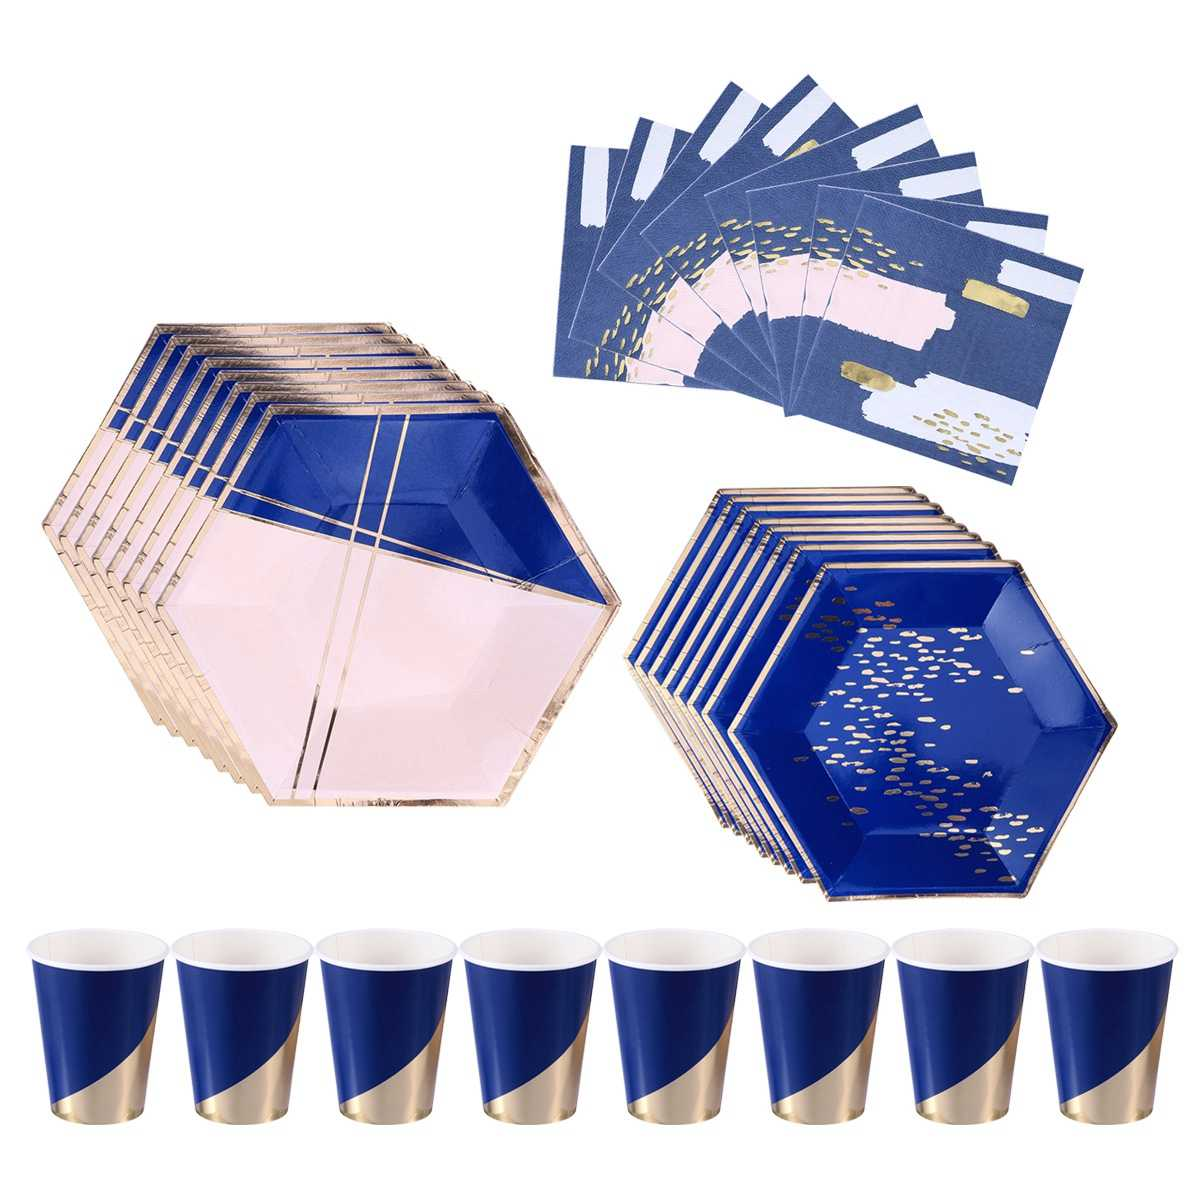 40pcs Gilding Decorative Disposable Paper Napkins Cups Plates for Baby Showers Birthday Weddings